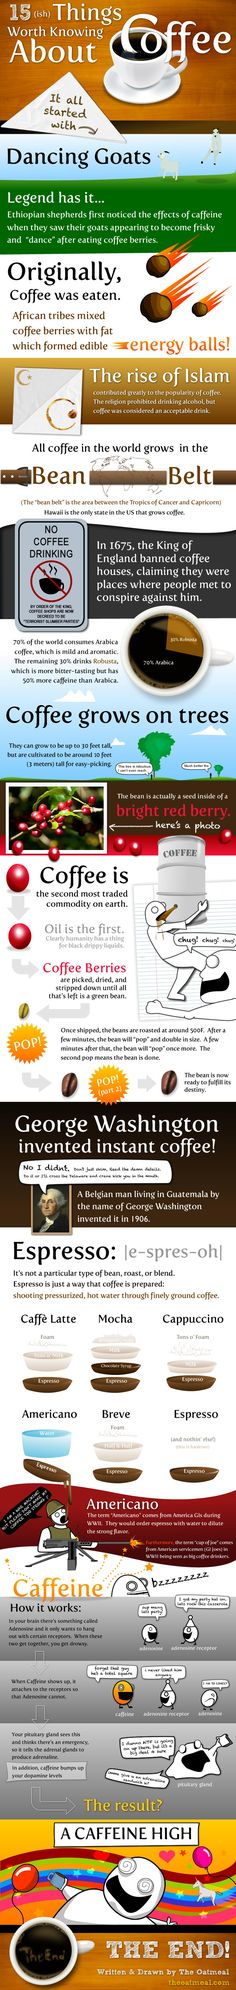 15 Things Worth Knowing About Coffee :) - The Oatmeal [http://theoatmeal.com/comics/coffee]